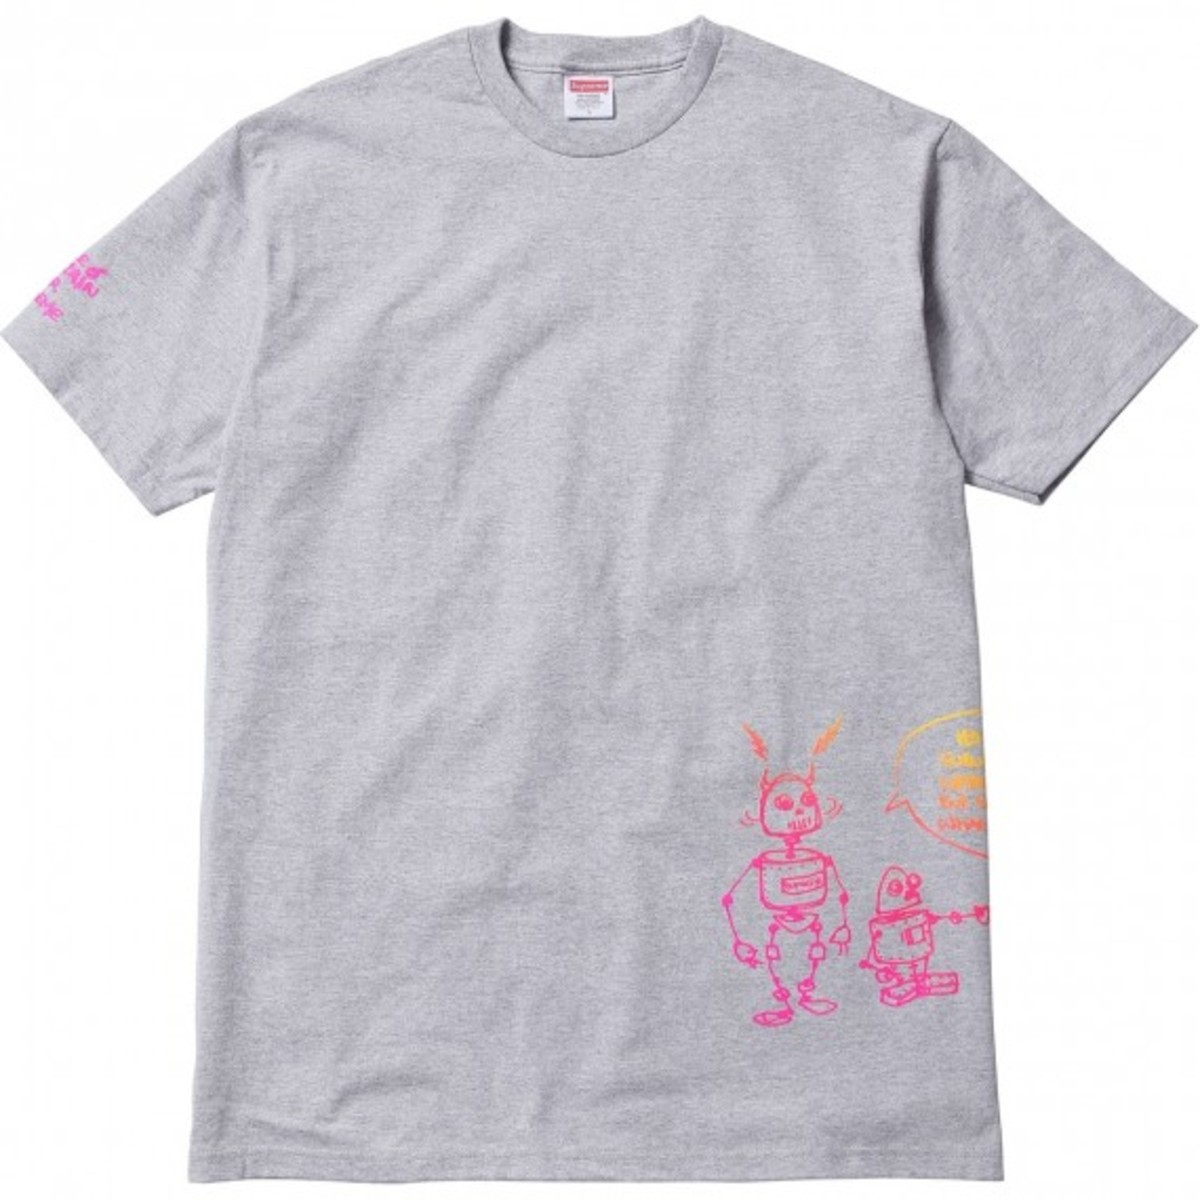 lance-mountain-supreme-robot-tee-02